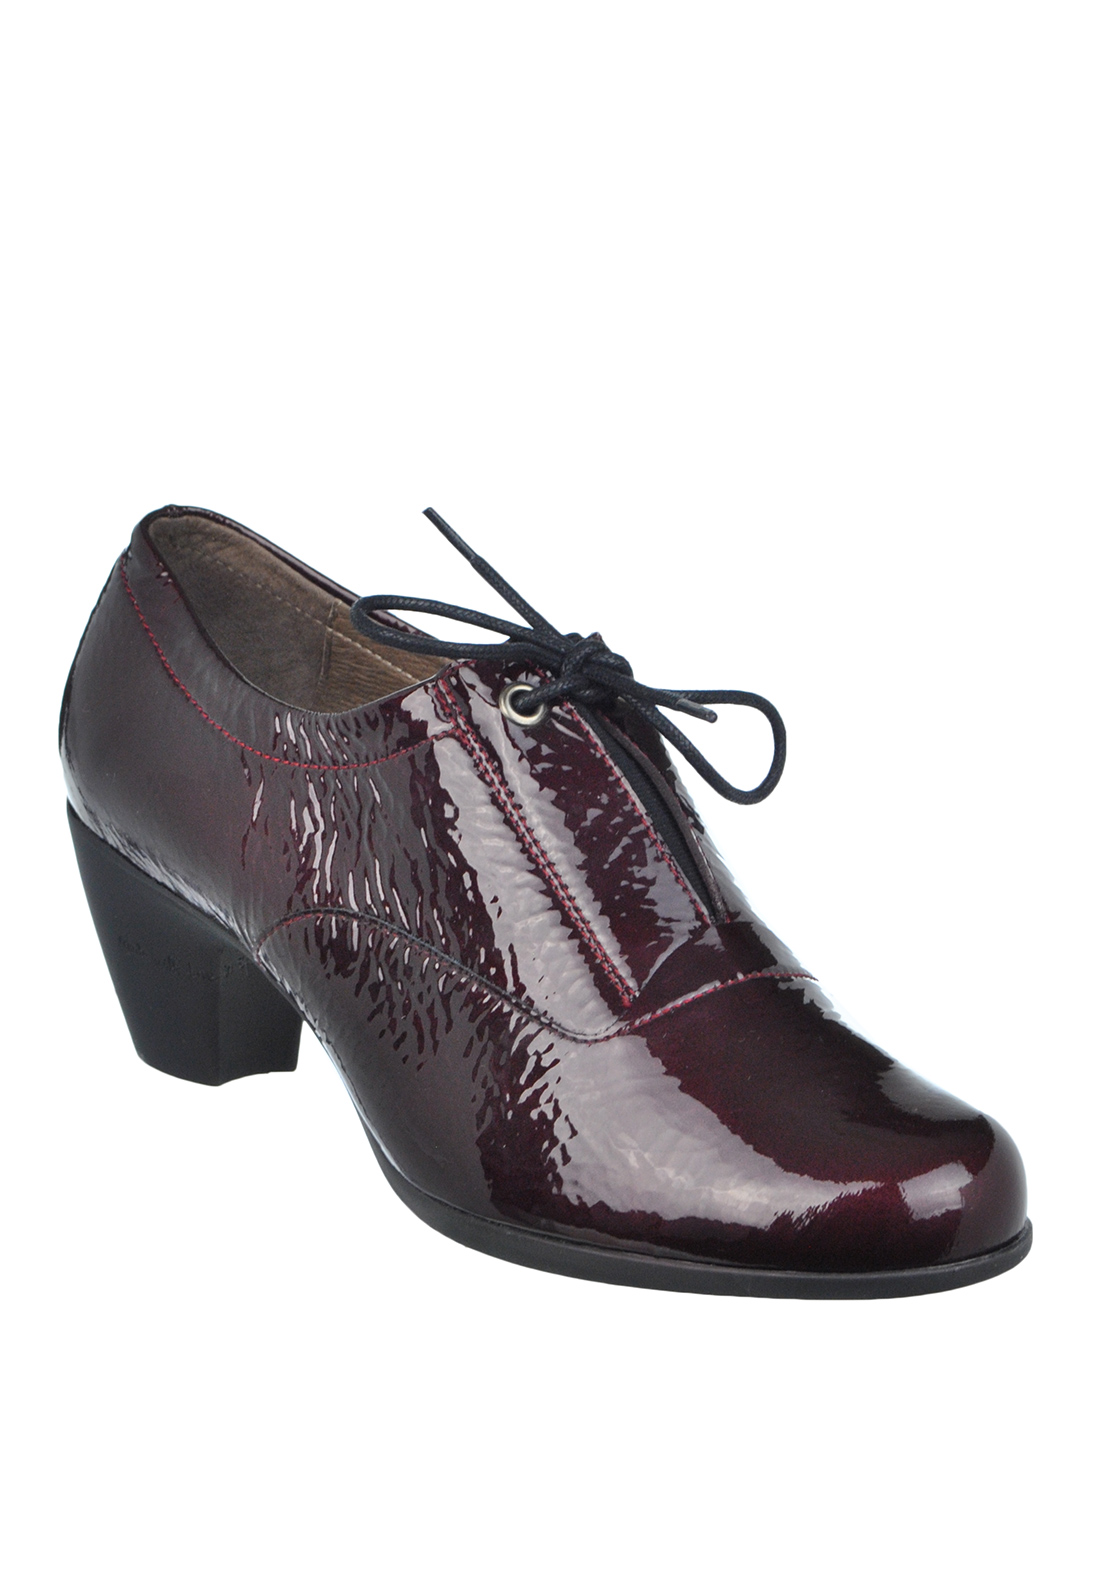 Wonders Patent Slip on Heeled Leather Shoe, Wine